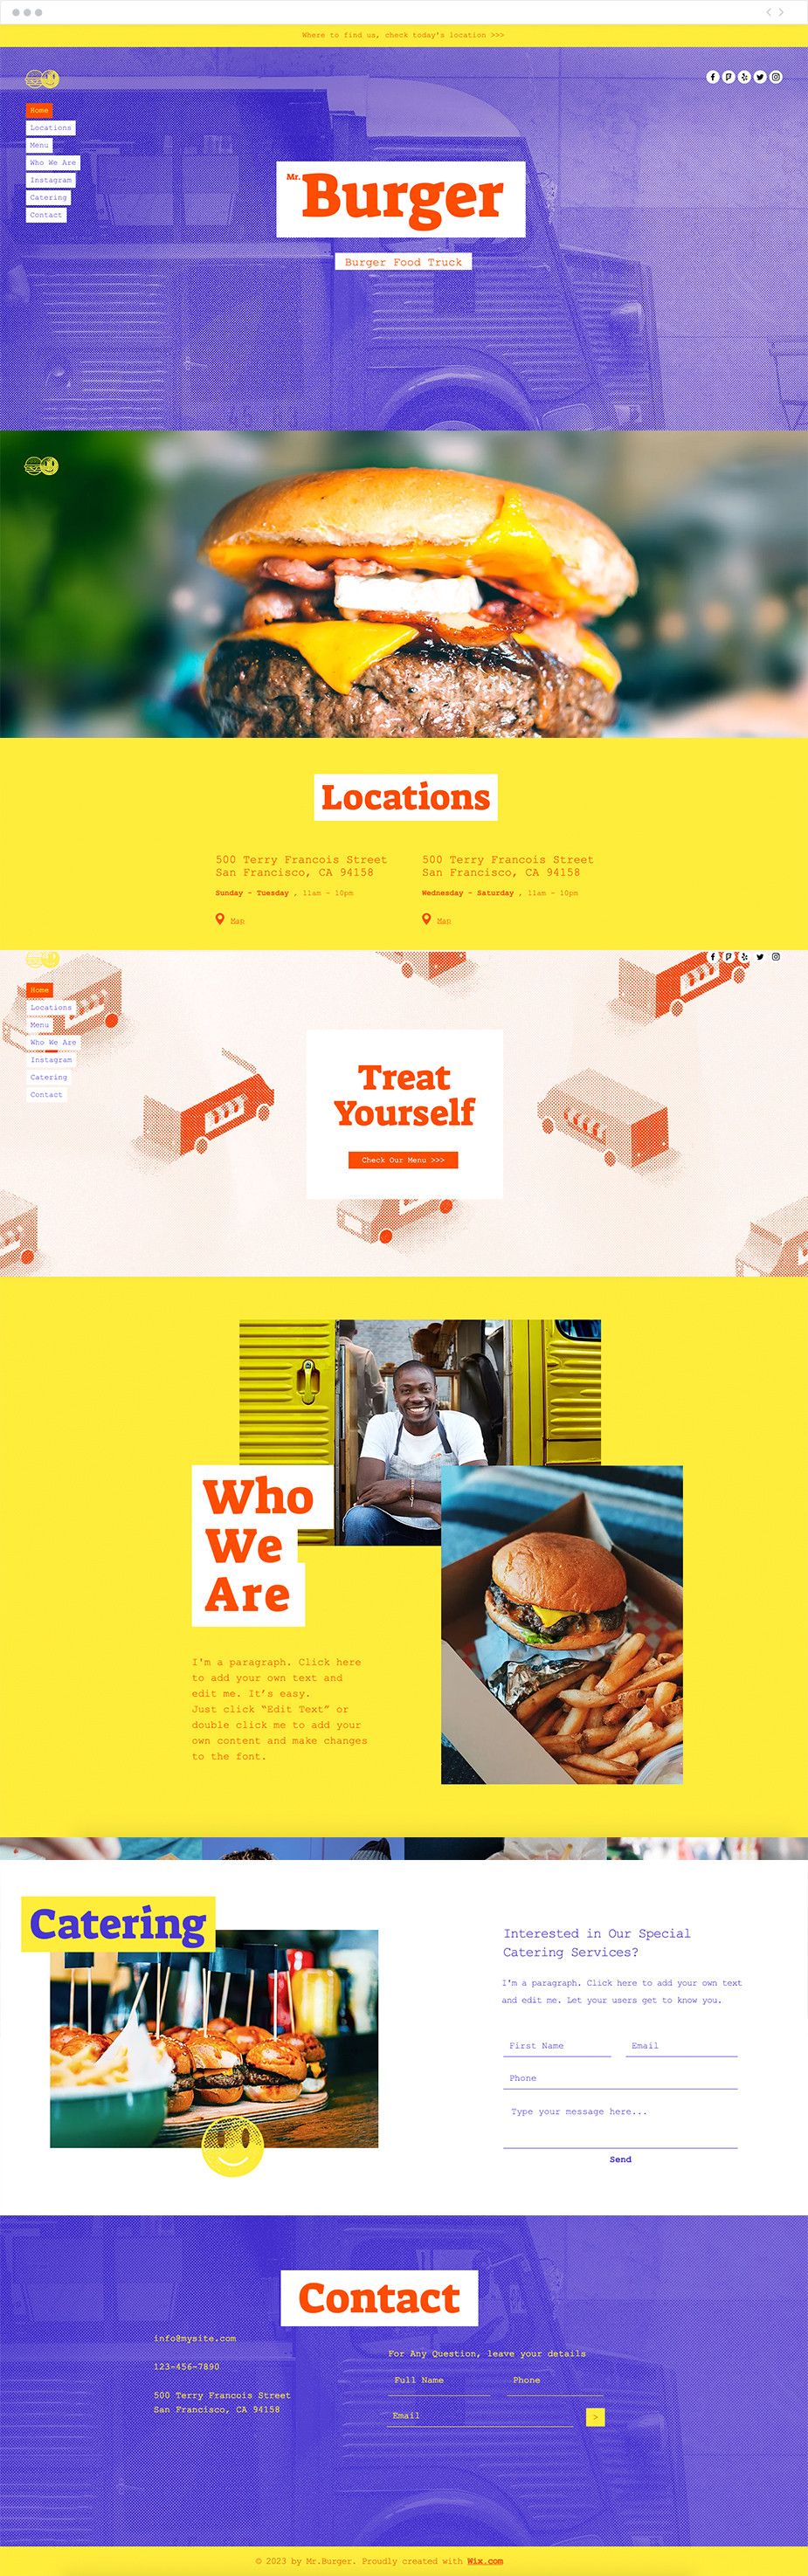 Template sito web food truck